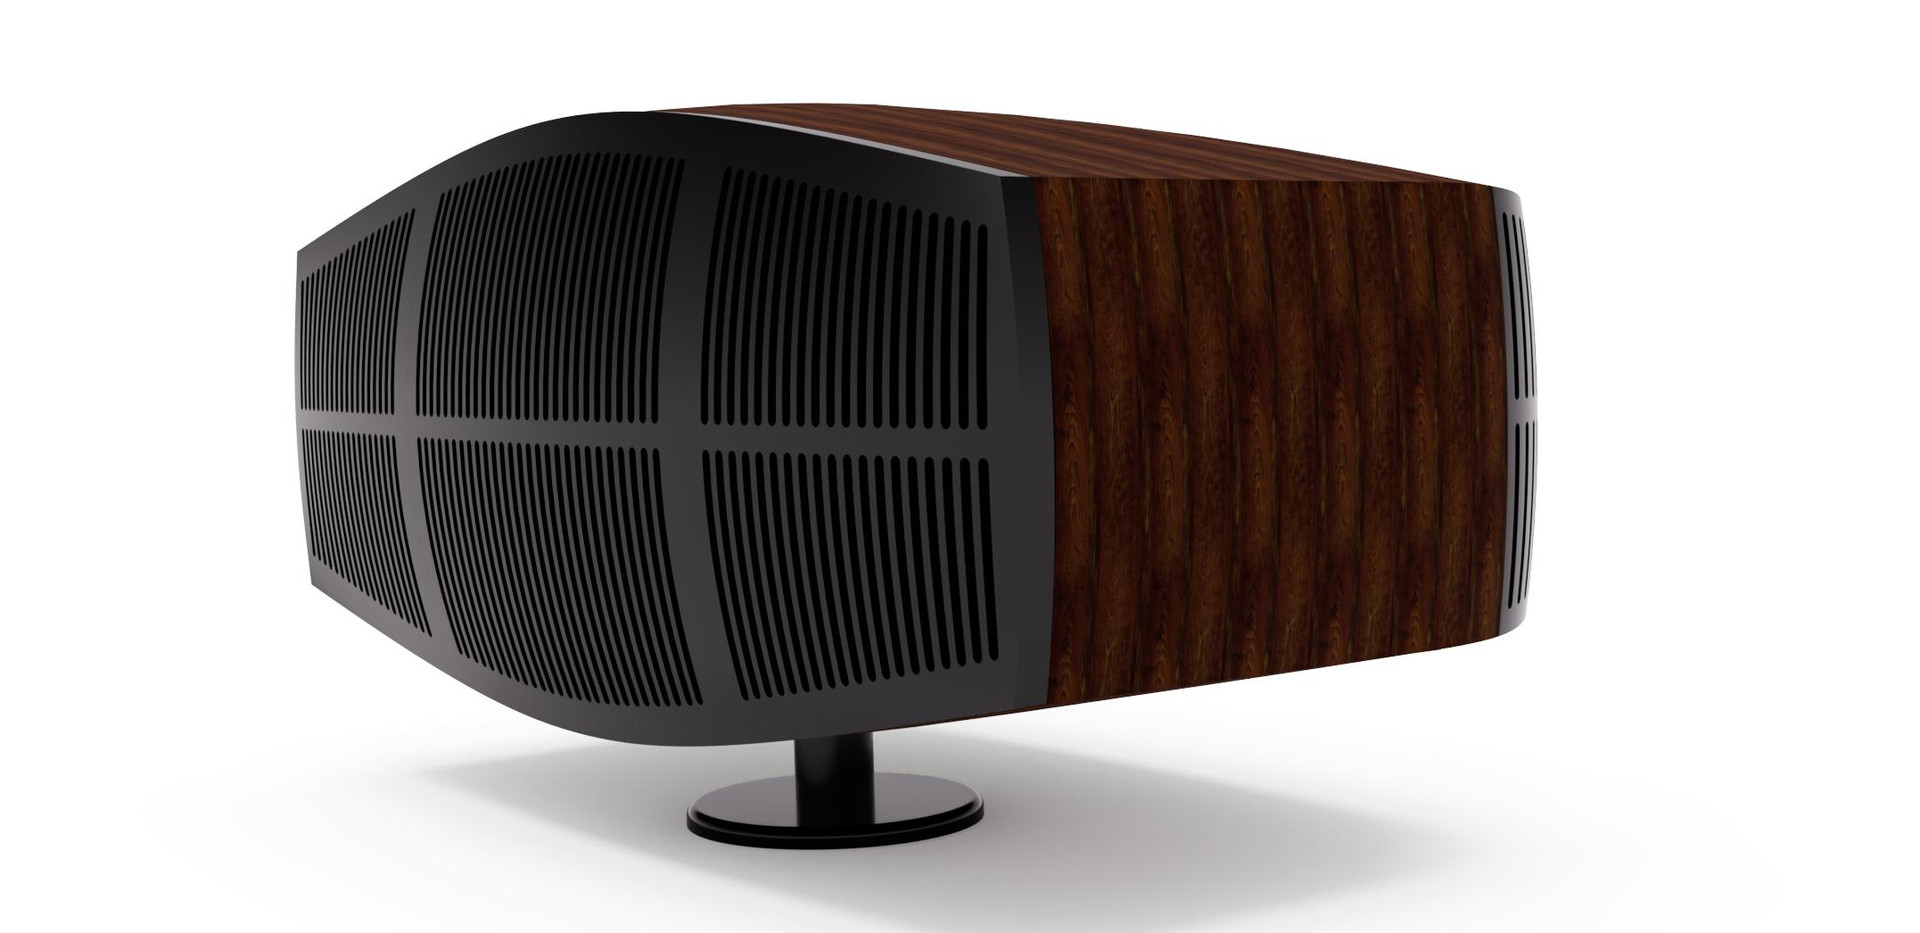 Beautiful side shot of the speaker. Fully displaying the  speaker grill at the front while also teasing the rear port grill.